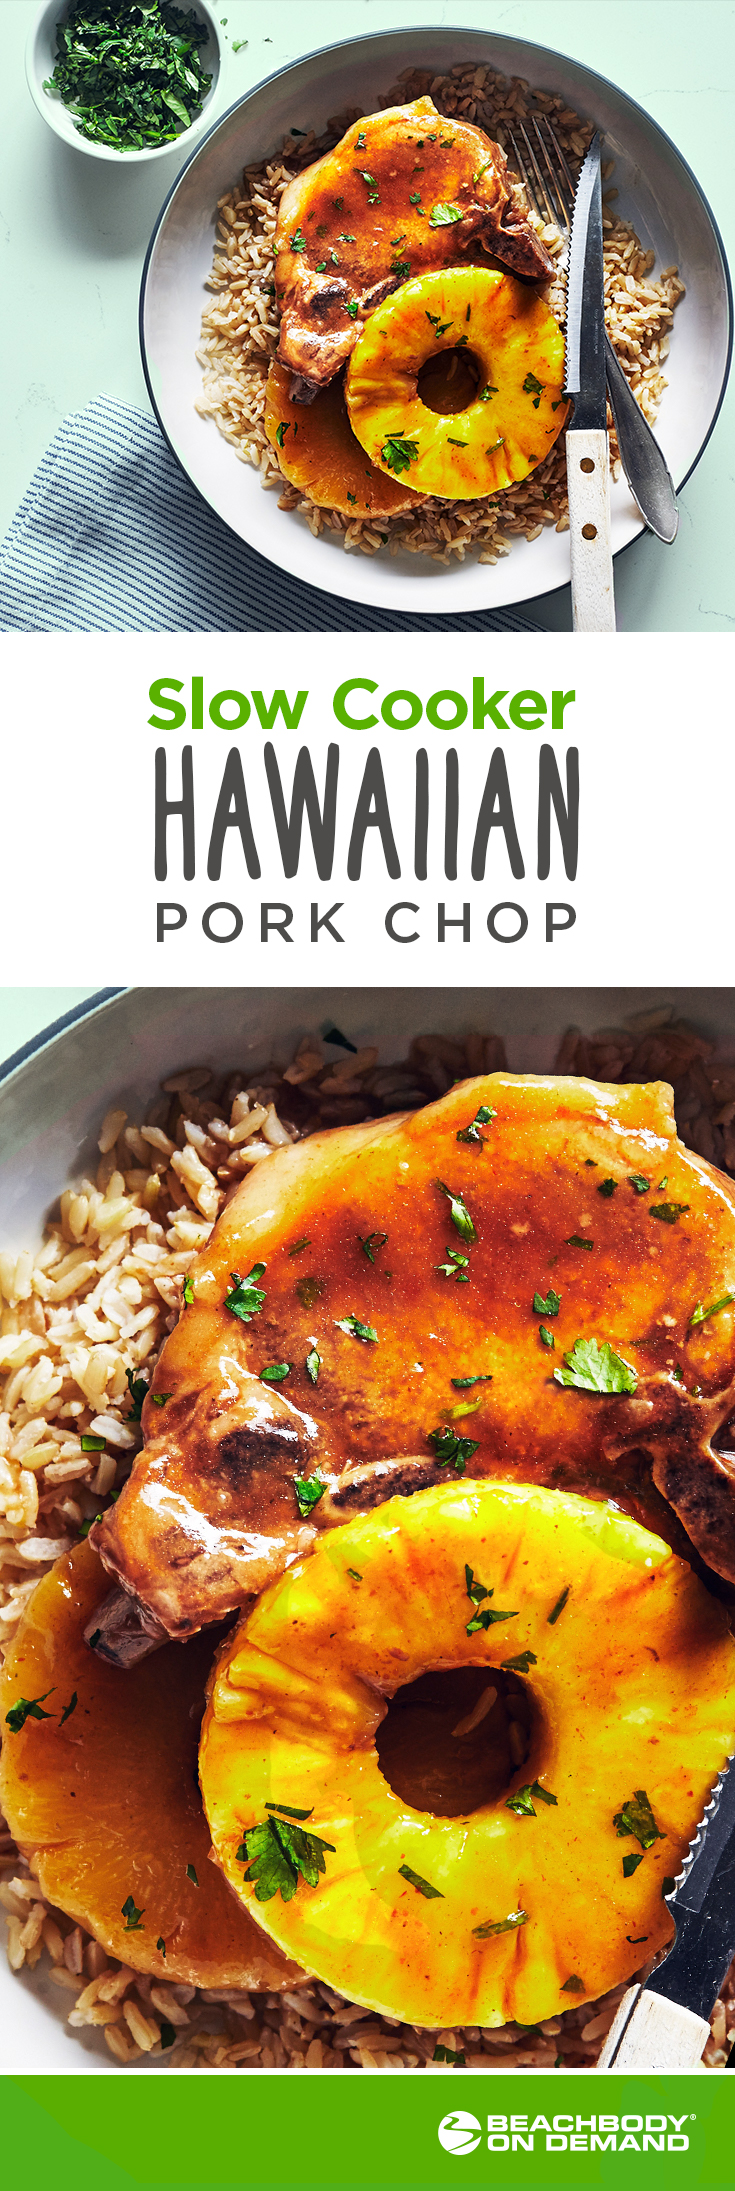 Slow Cooker Hawaiian Style Pork Chops